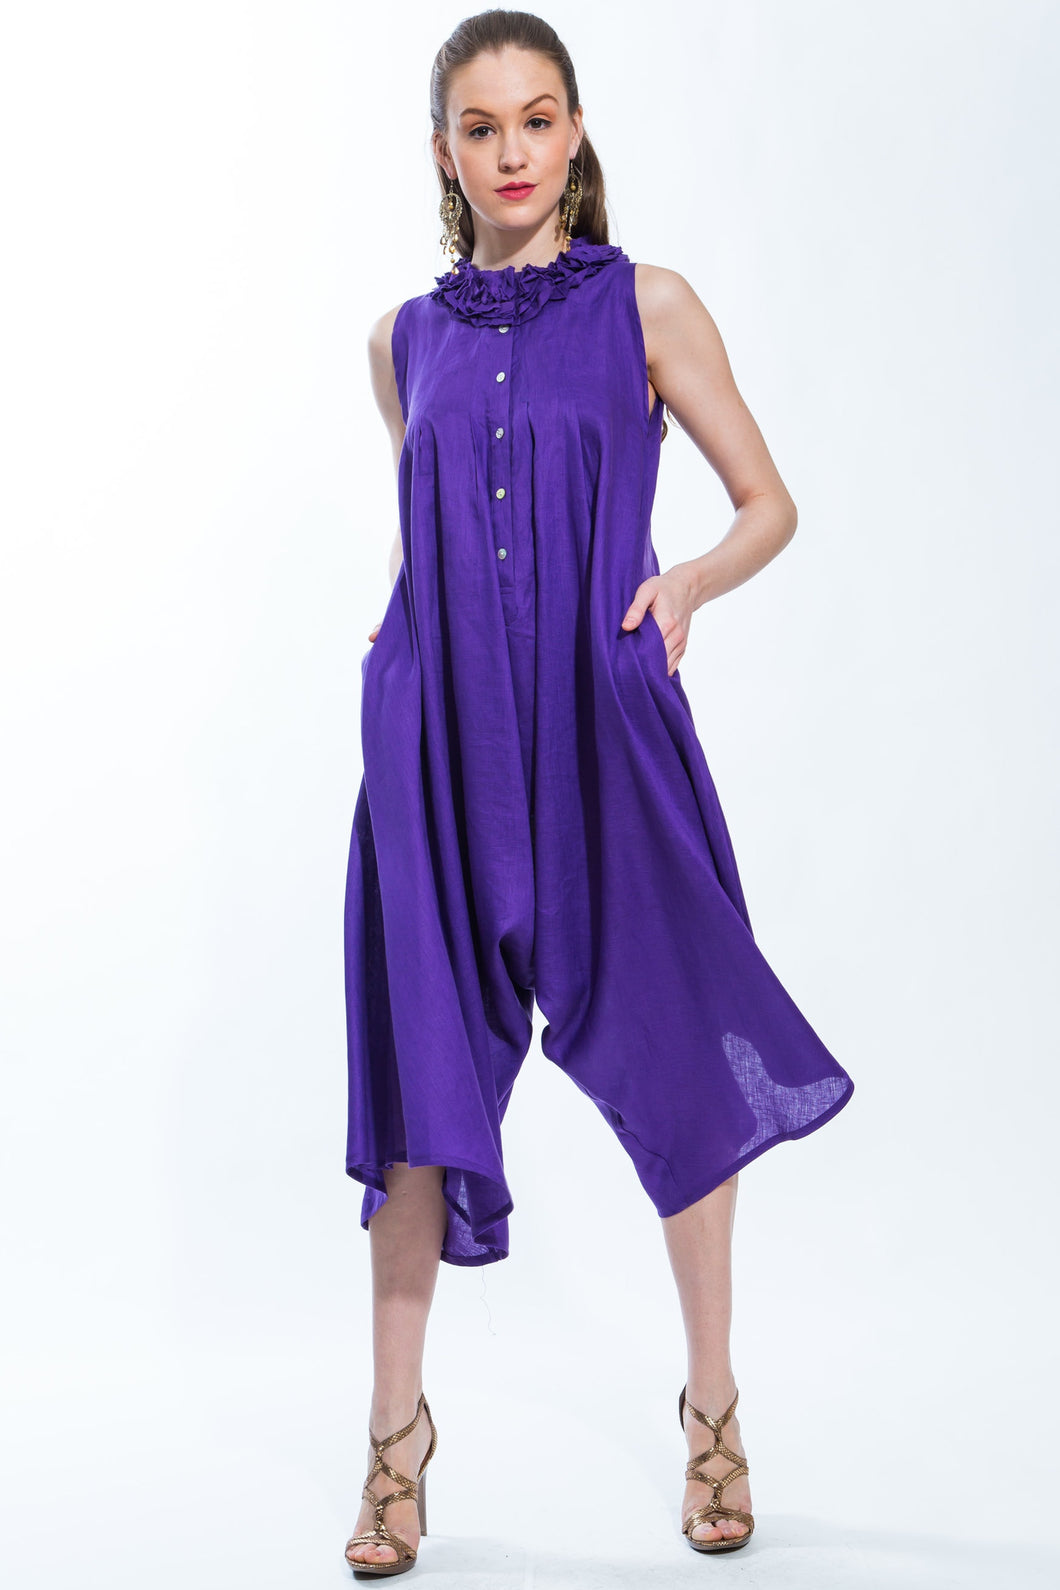 Jumpsuit Mini Ruffle (Purple) Style 1272